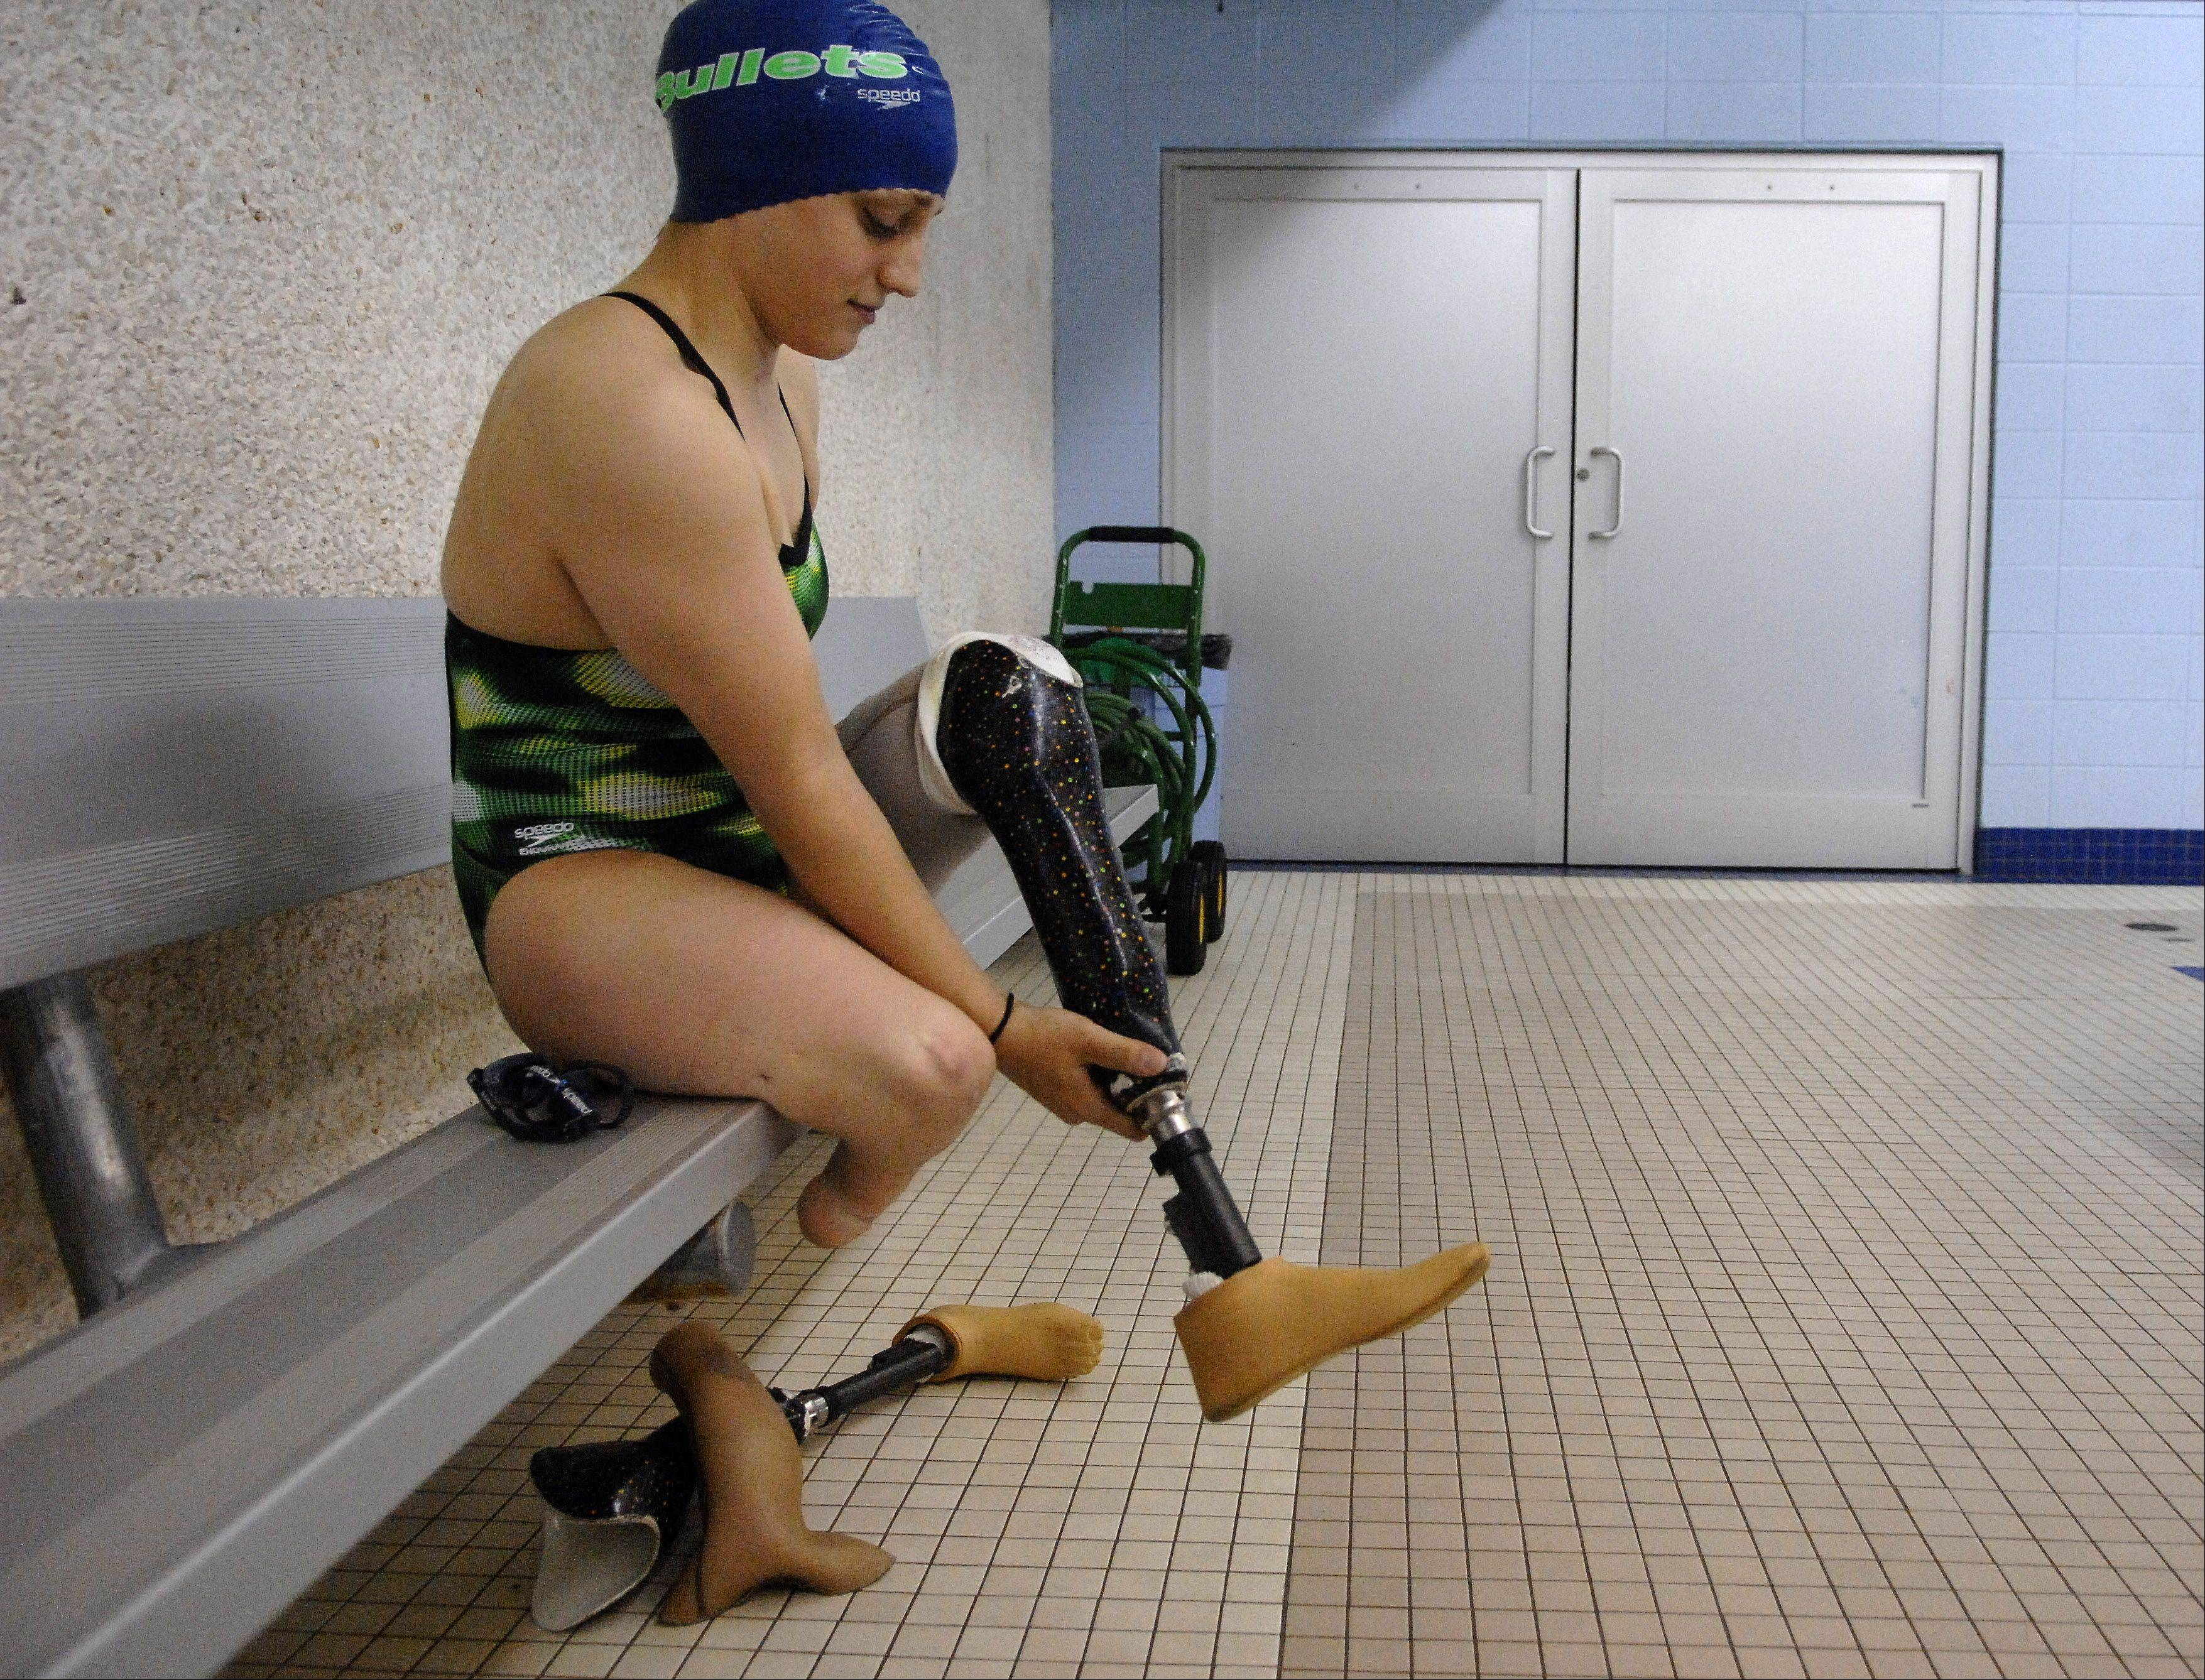 Swimmer Amy Chapman of Batavia is 17th in the world in the 100-meter breast stroke in her disability classification. She set a record at the Parapan American Games held last November in Mexico.